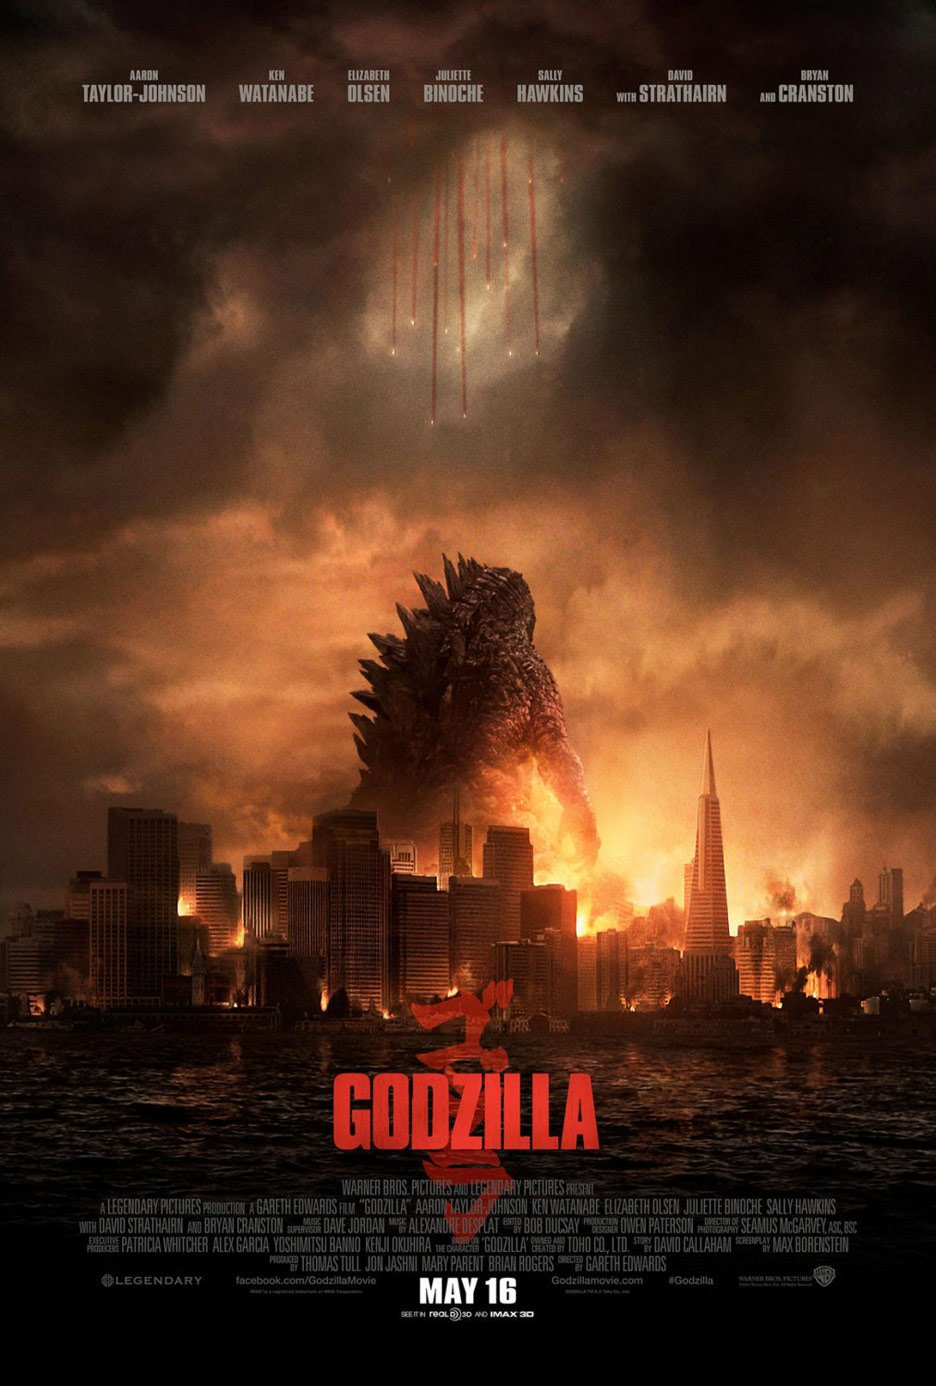 Godzilla 2014 Official Theatrical Trailer